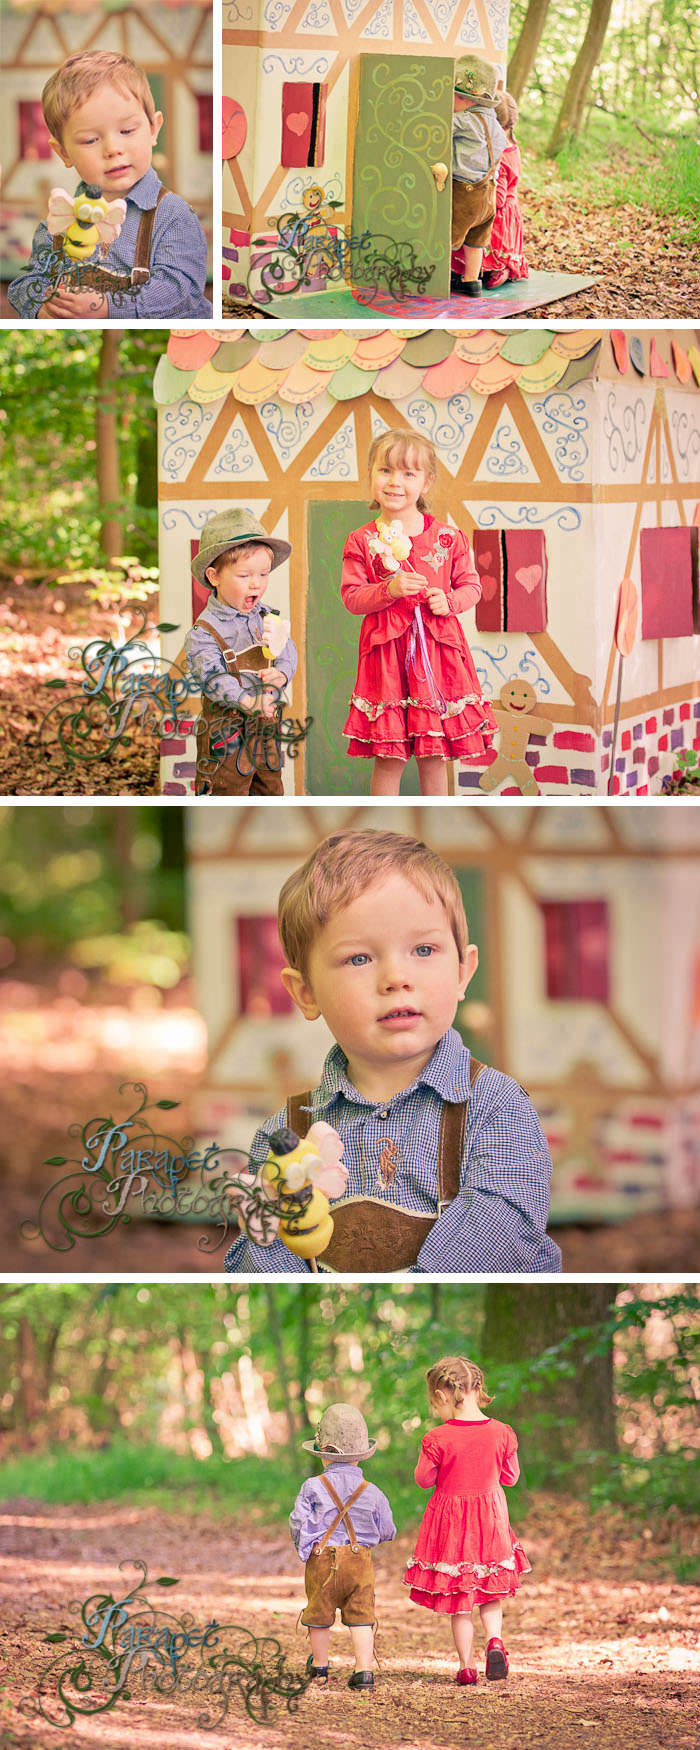 A basic guide on how to do a Hansel and Gretel themed children's photo shoot with tutorials, prop and location ideas